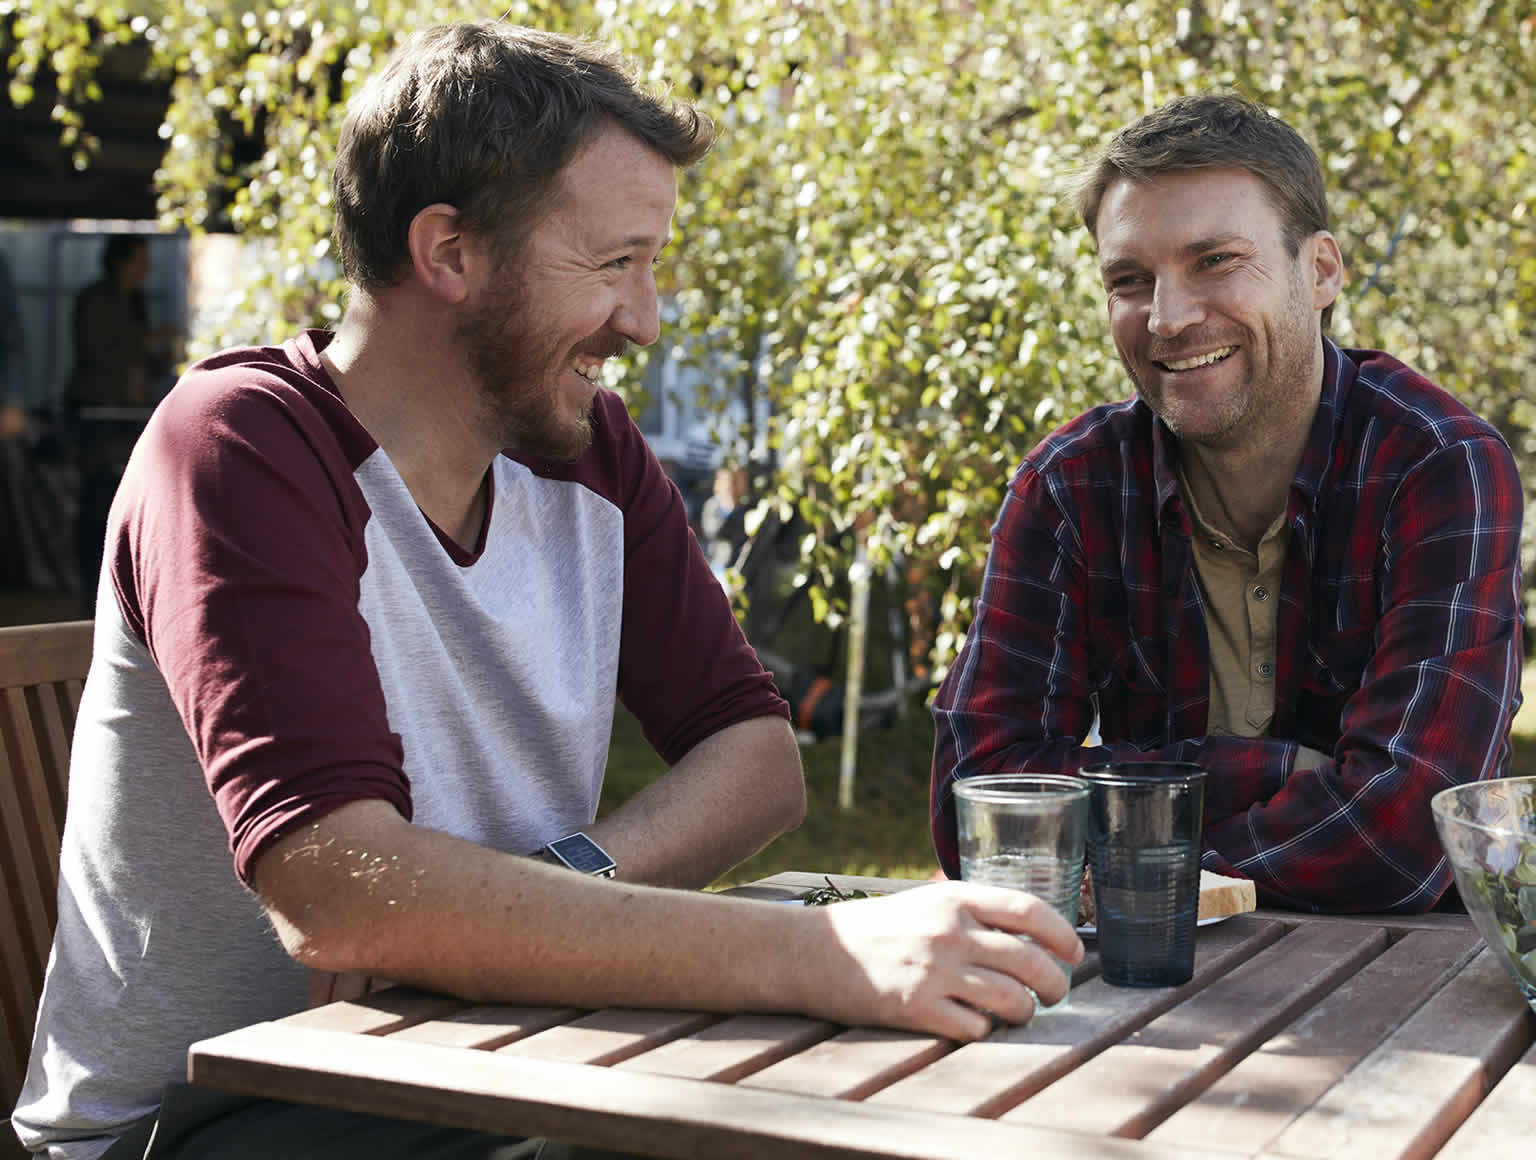 Two mates sitting at a table outside in a leafy garden during a friendly bar-b-q on a sunny day. There are drinks and food on the table and two women are standing up chatting away from the table